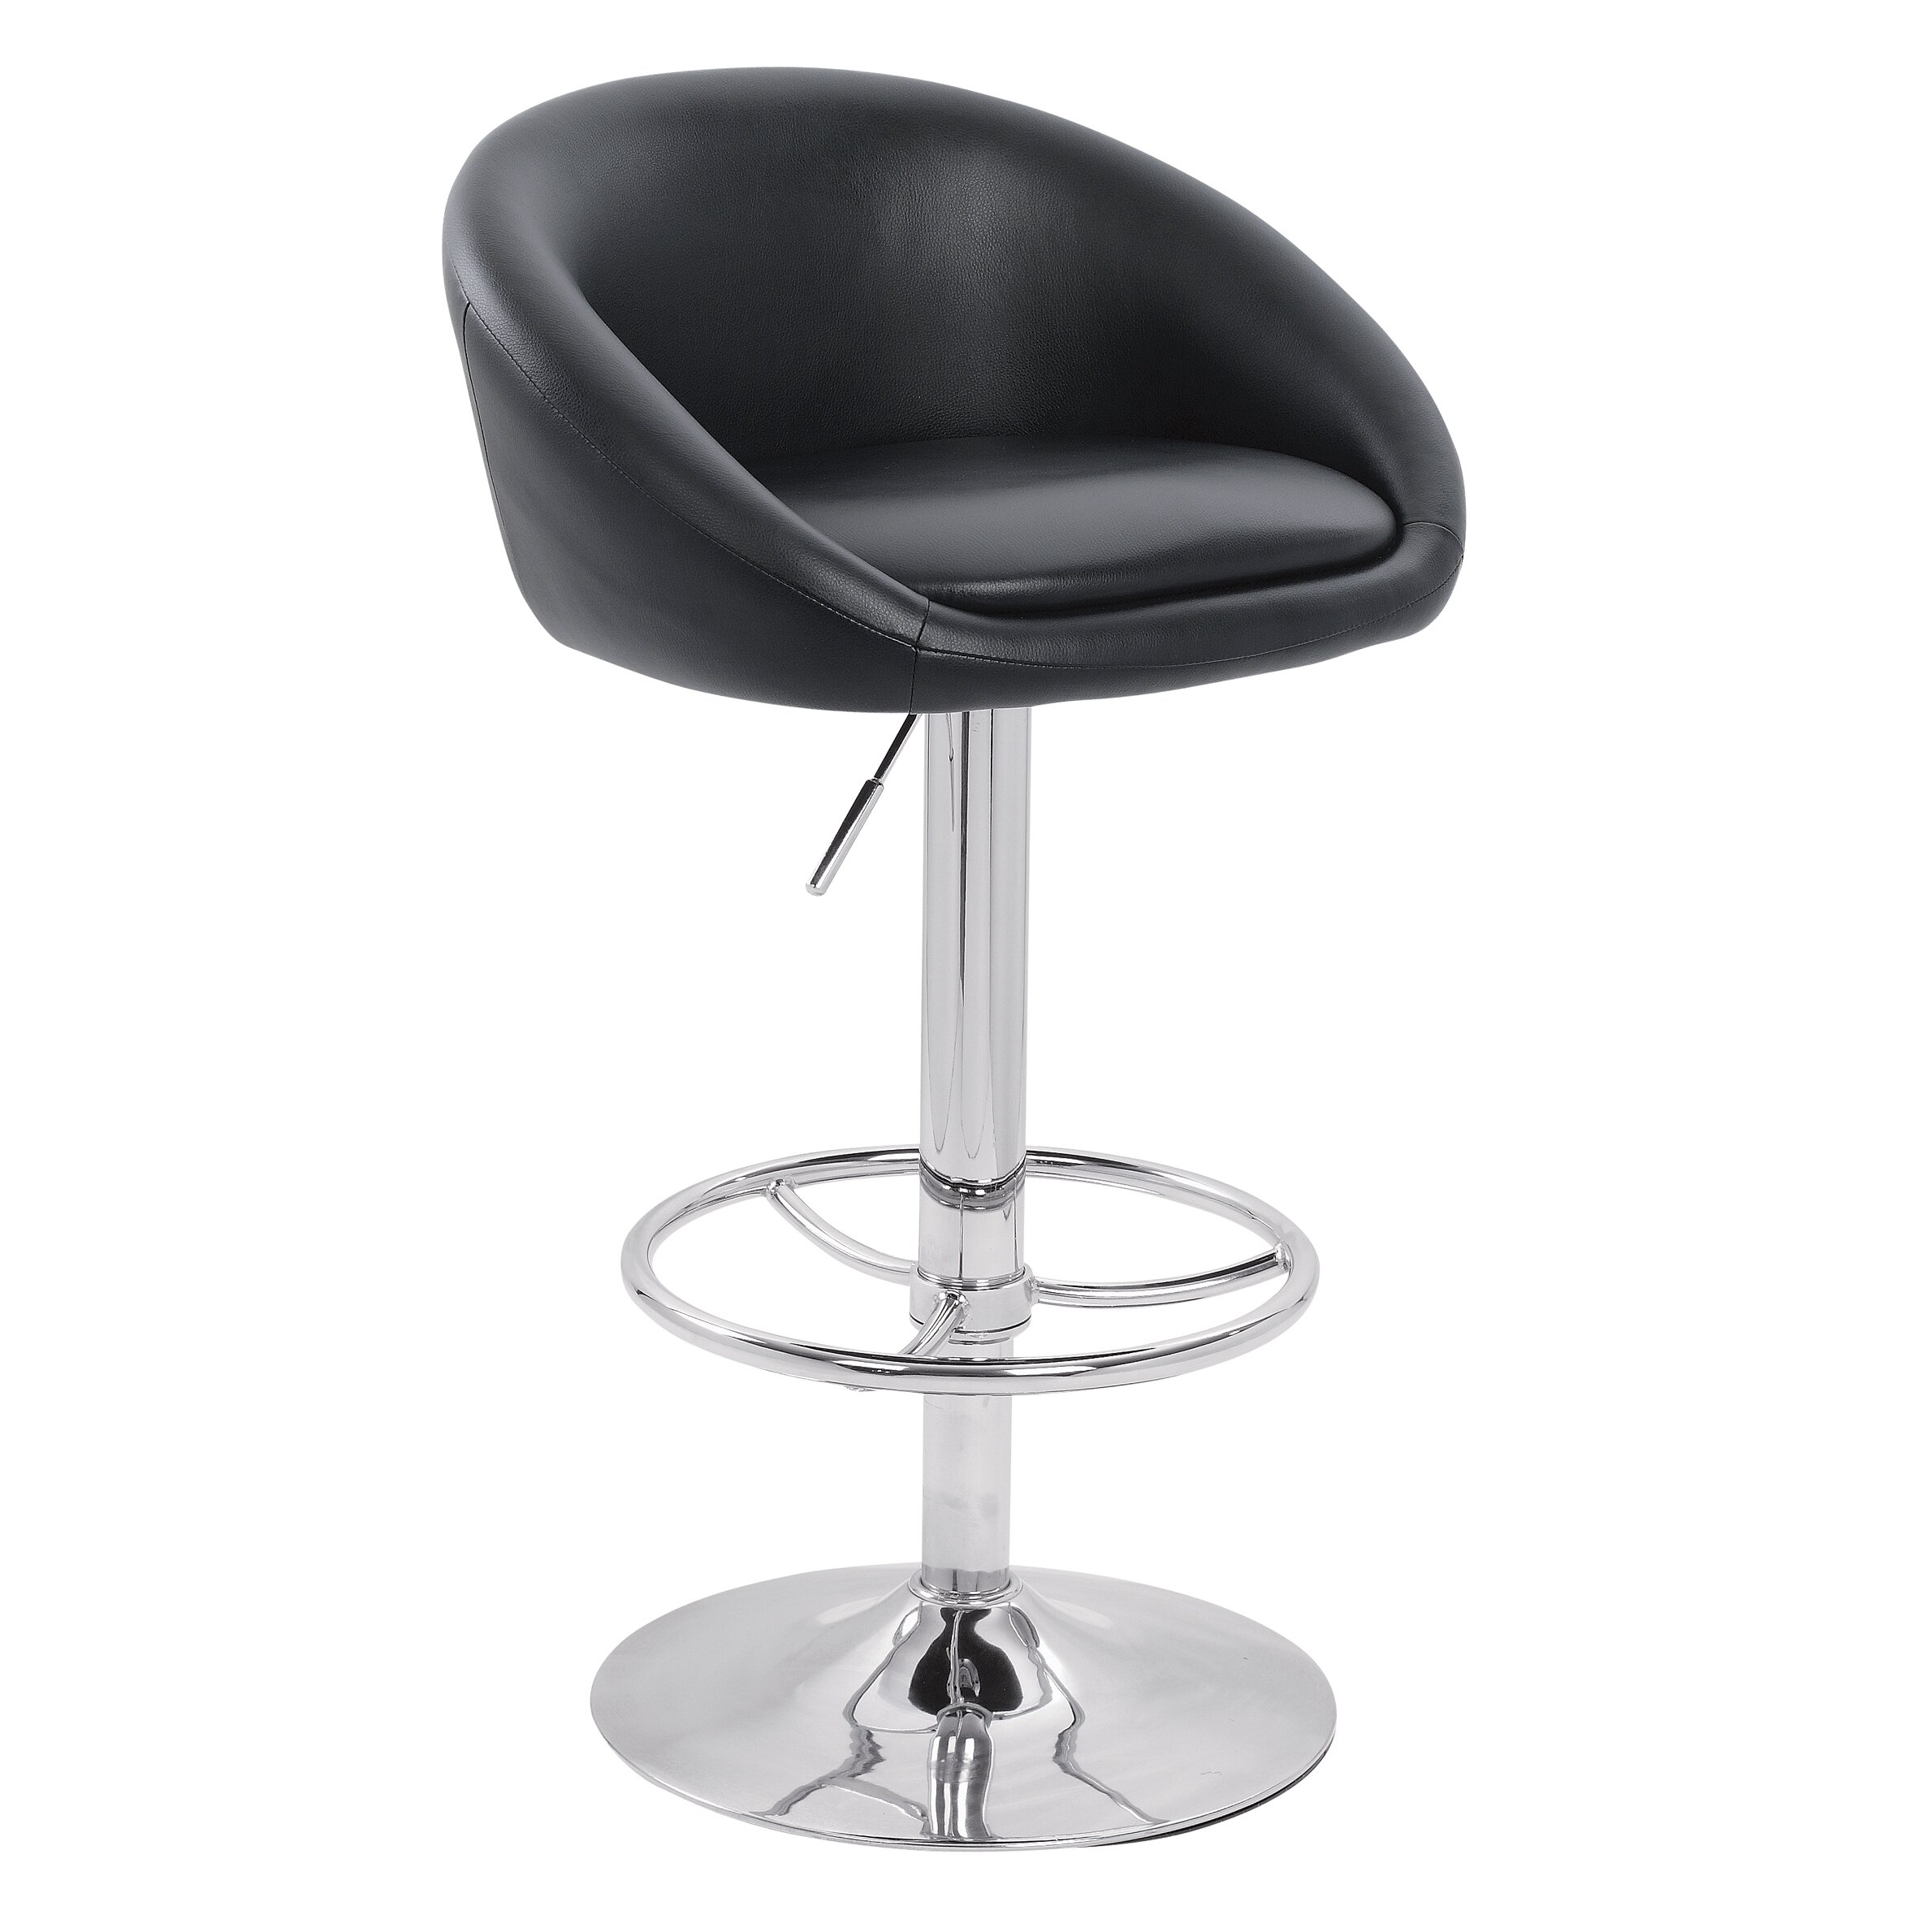 Lamboro Swivel Adjustable Bar Stool amp Reviews Wayfair UK : Lamboro Luca Adjustable Bar Stool with Step Luca from www.wayfair.co.uk size 2379 x 2379 jpeg 451kB